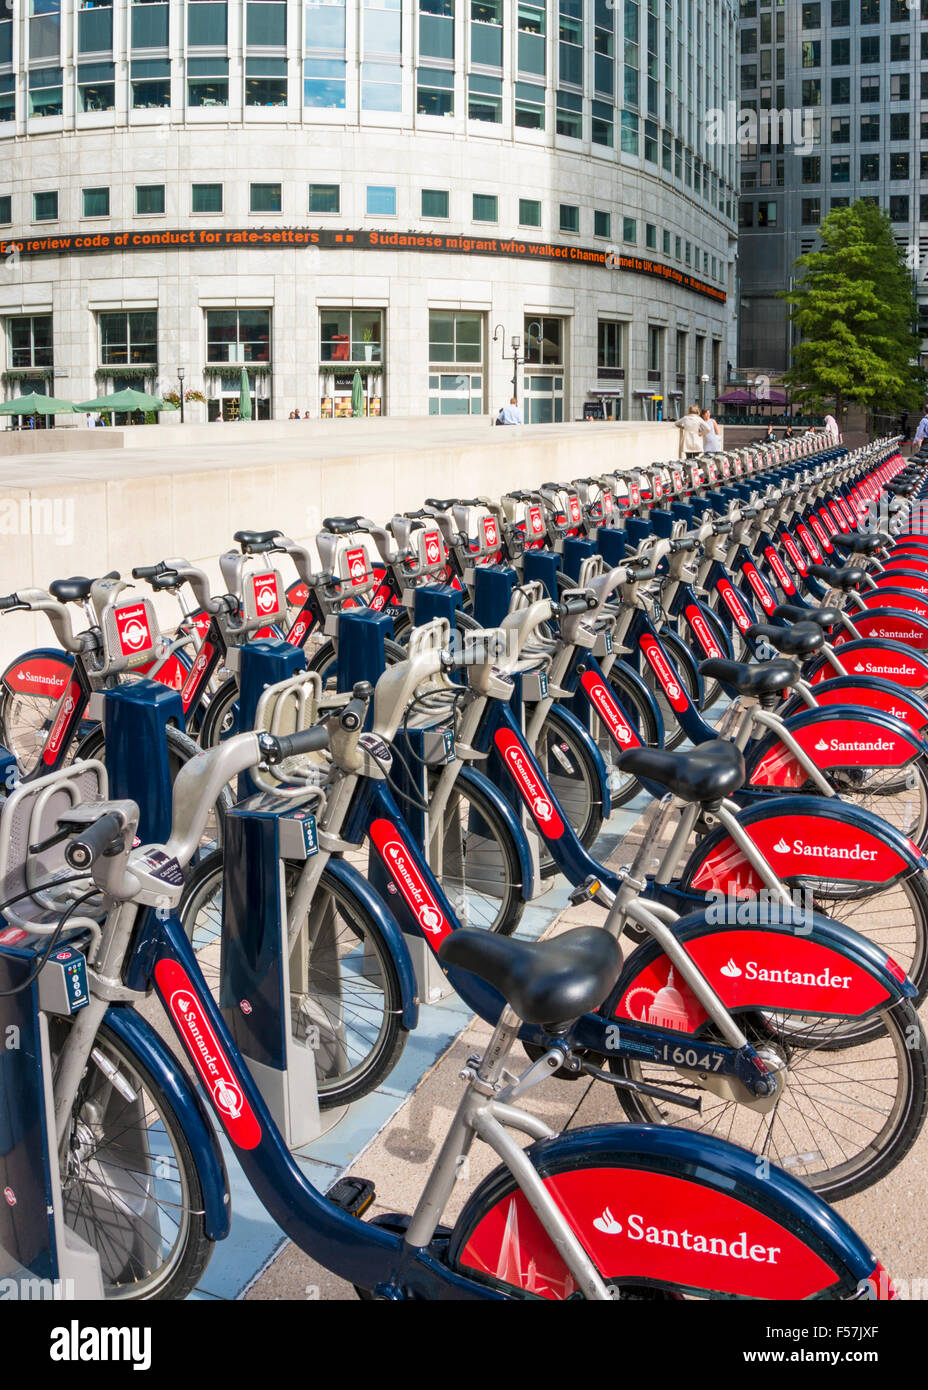 Santander red Boris Bikes for hire in a docking station Canary Wharf London England UK GB EU Europe - Stock Image